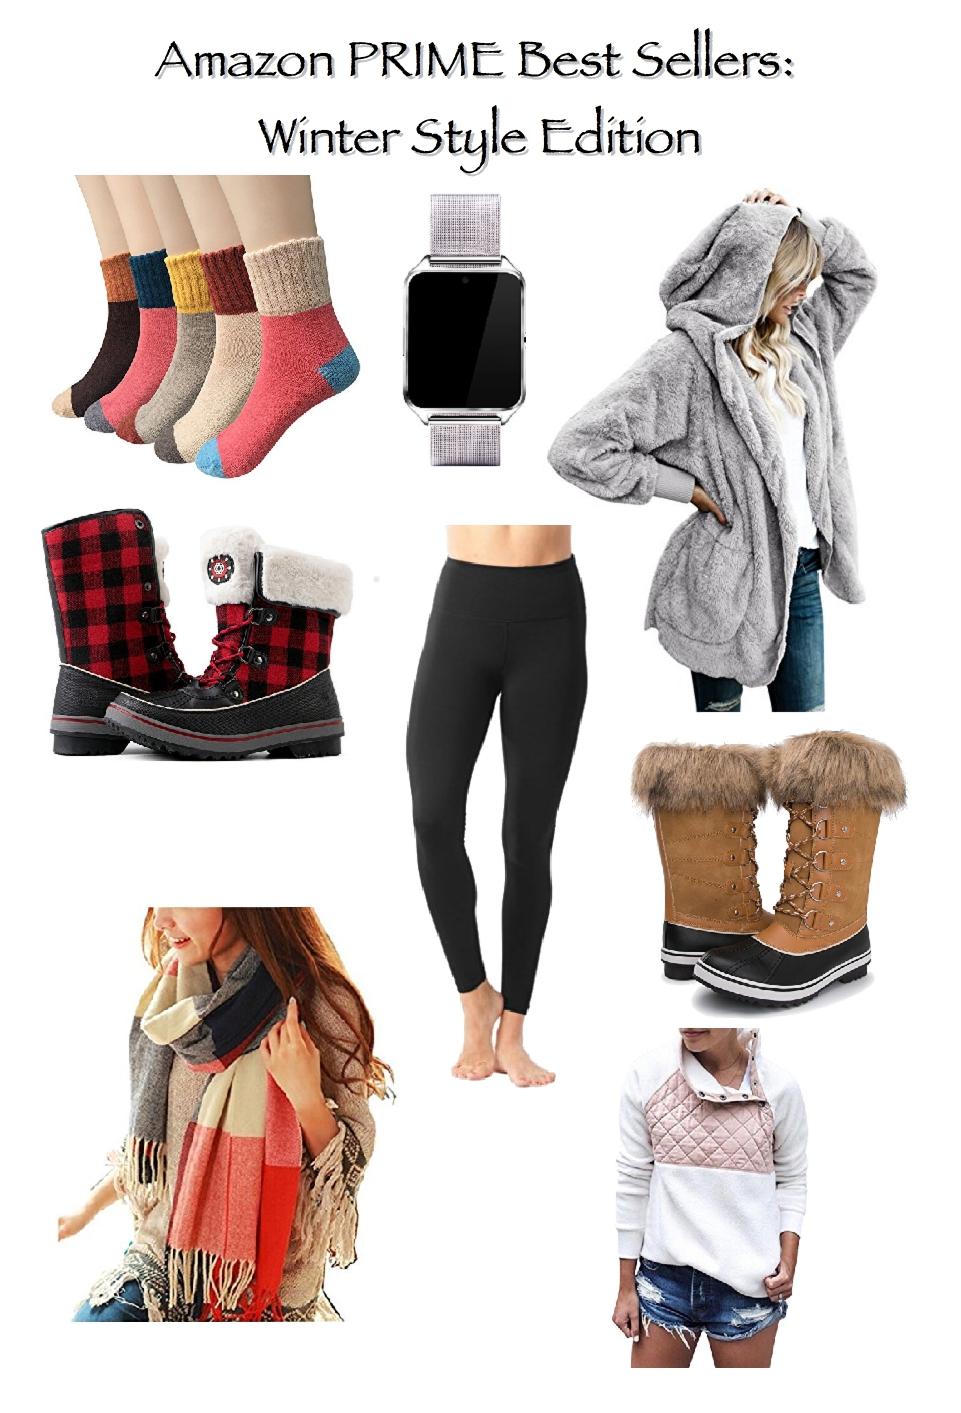 Amazon Prime Best Sellers, Winter Style, Winter Fashion